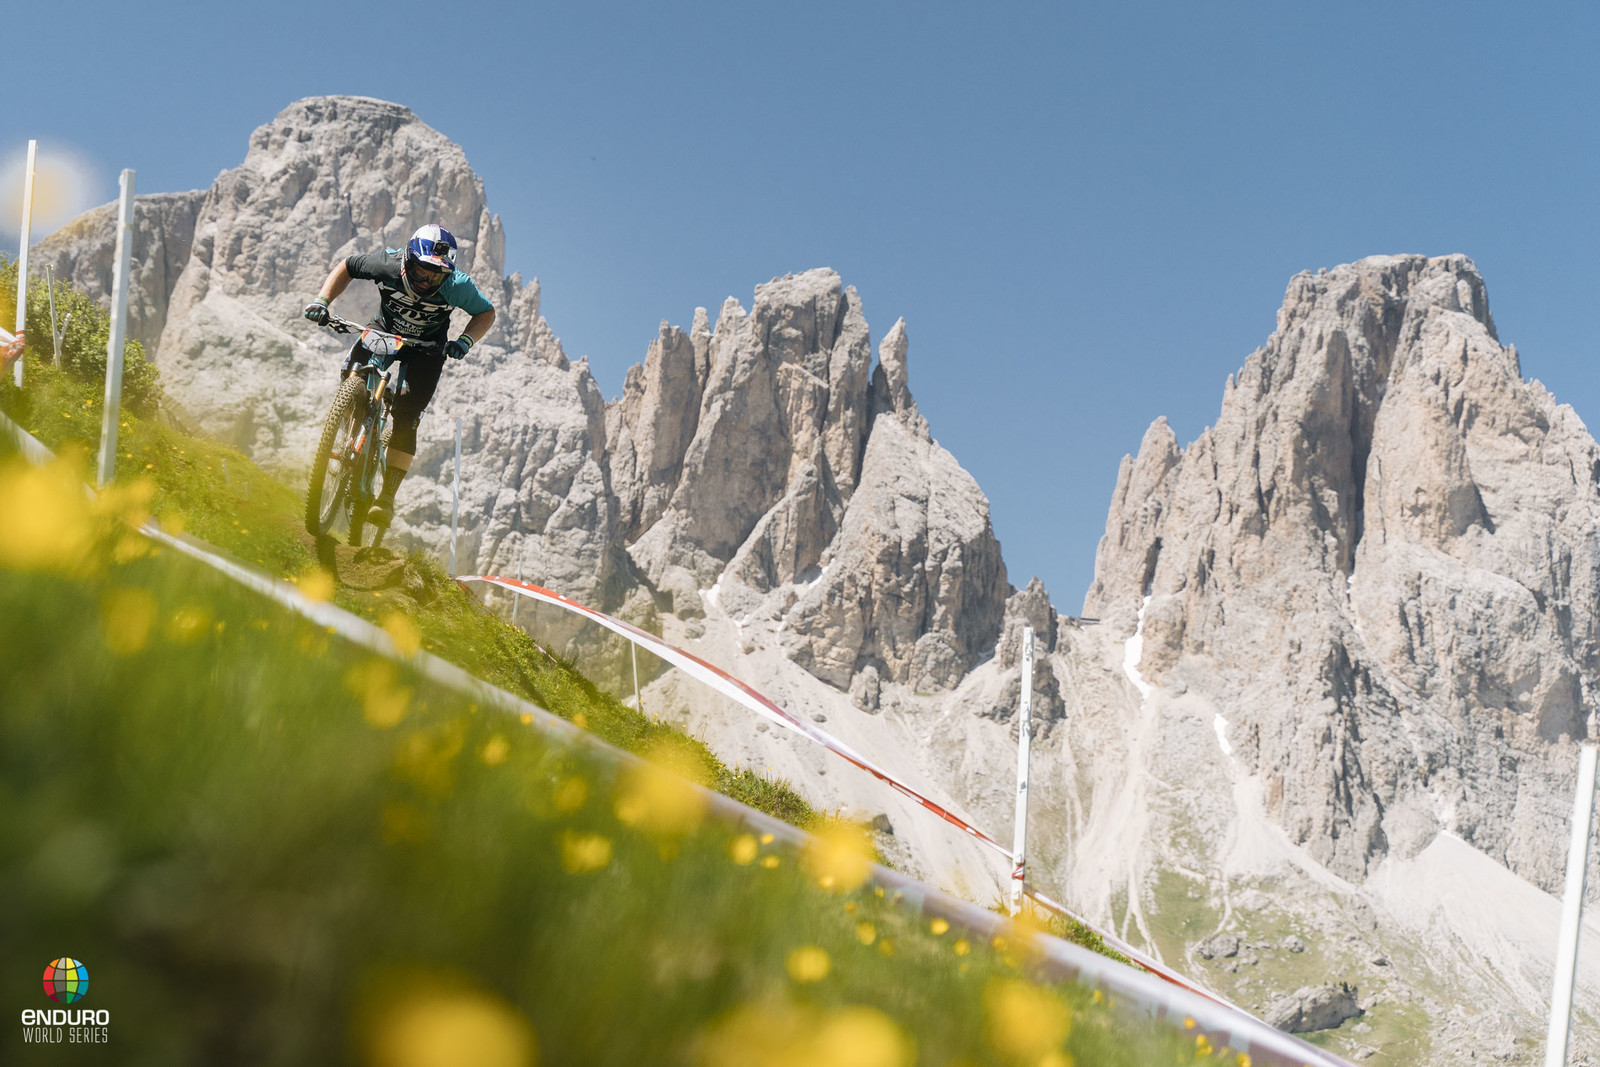 Val Di Fassa will kick off the EWS season by hosting a double round in the Italian Dolomites.